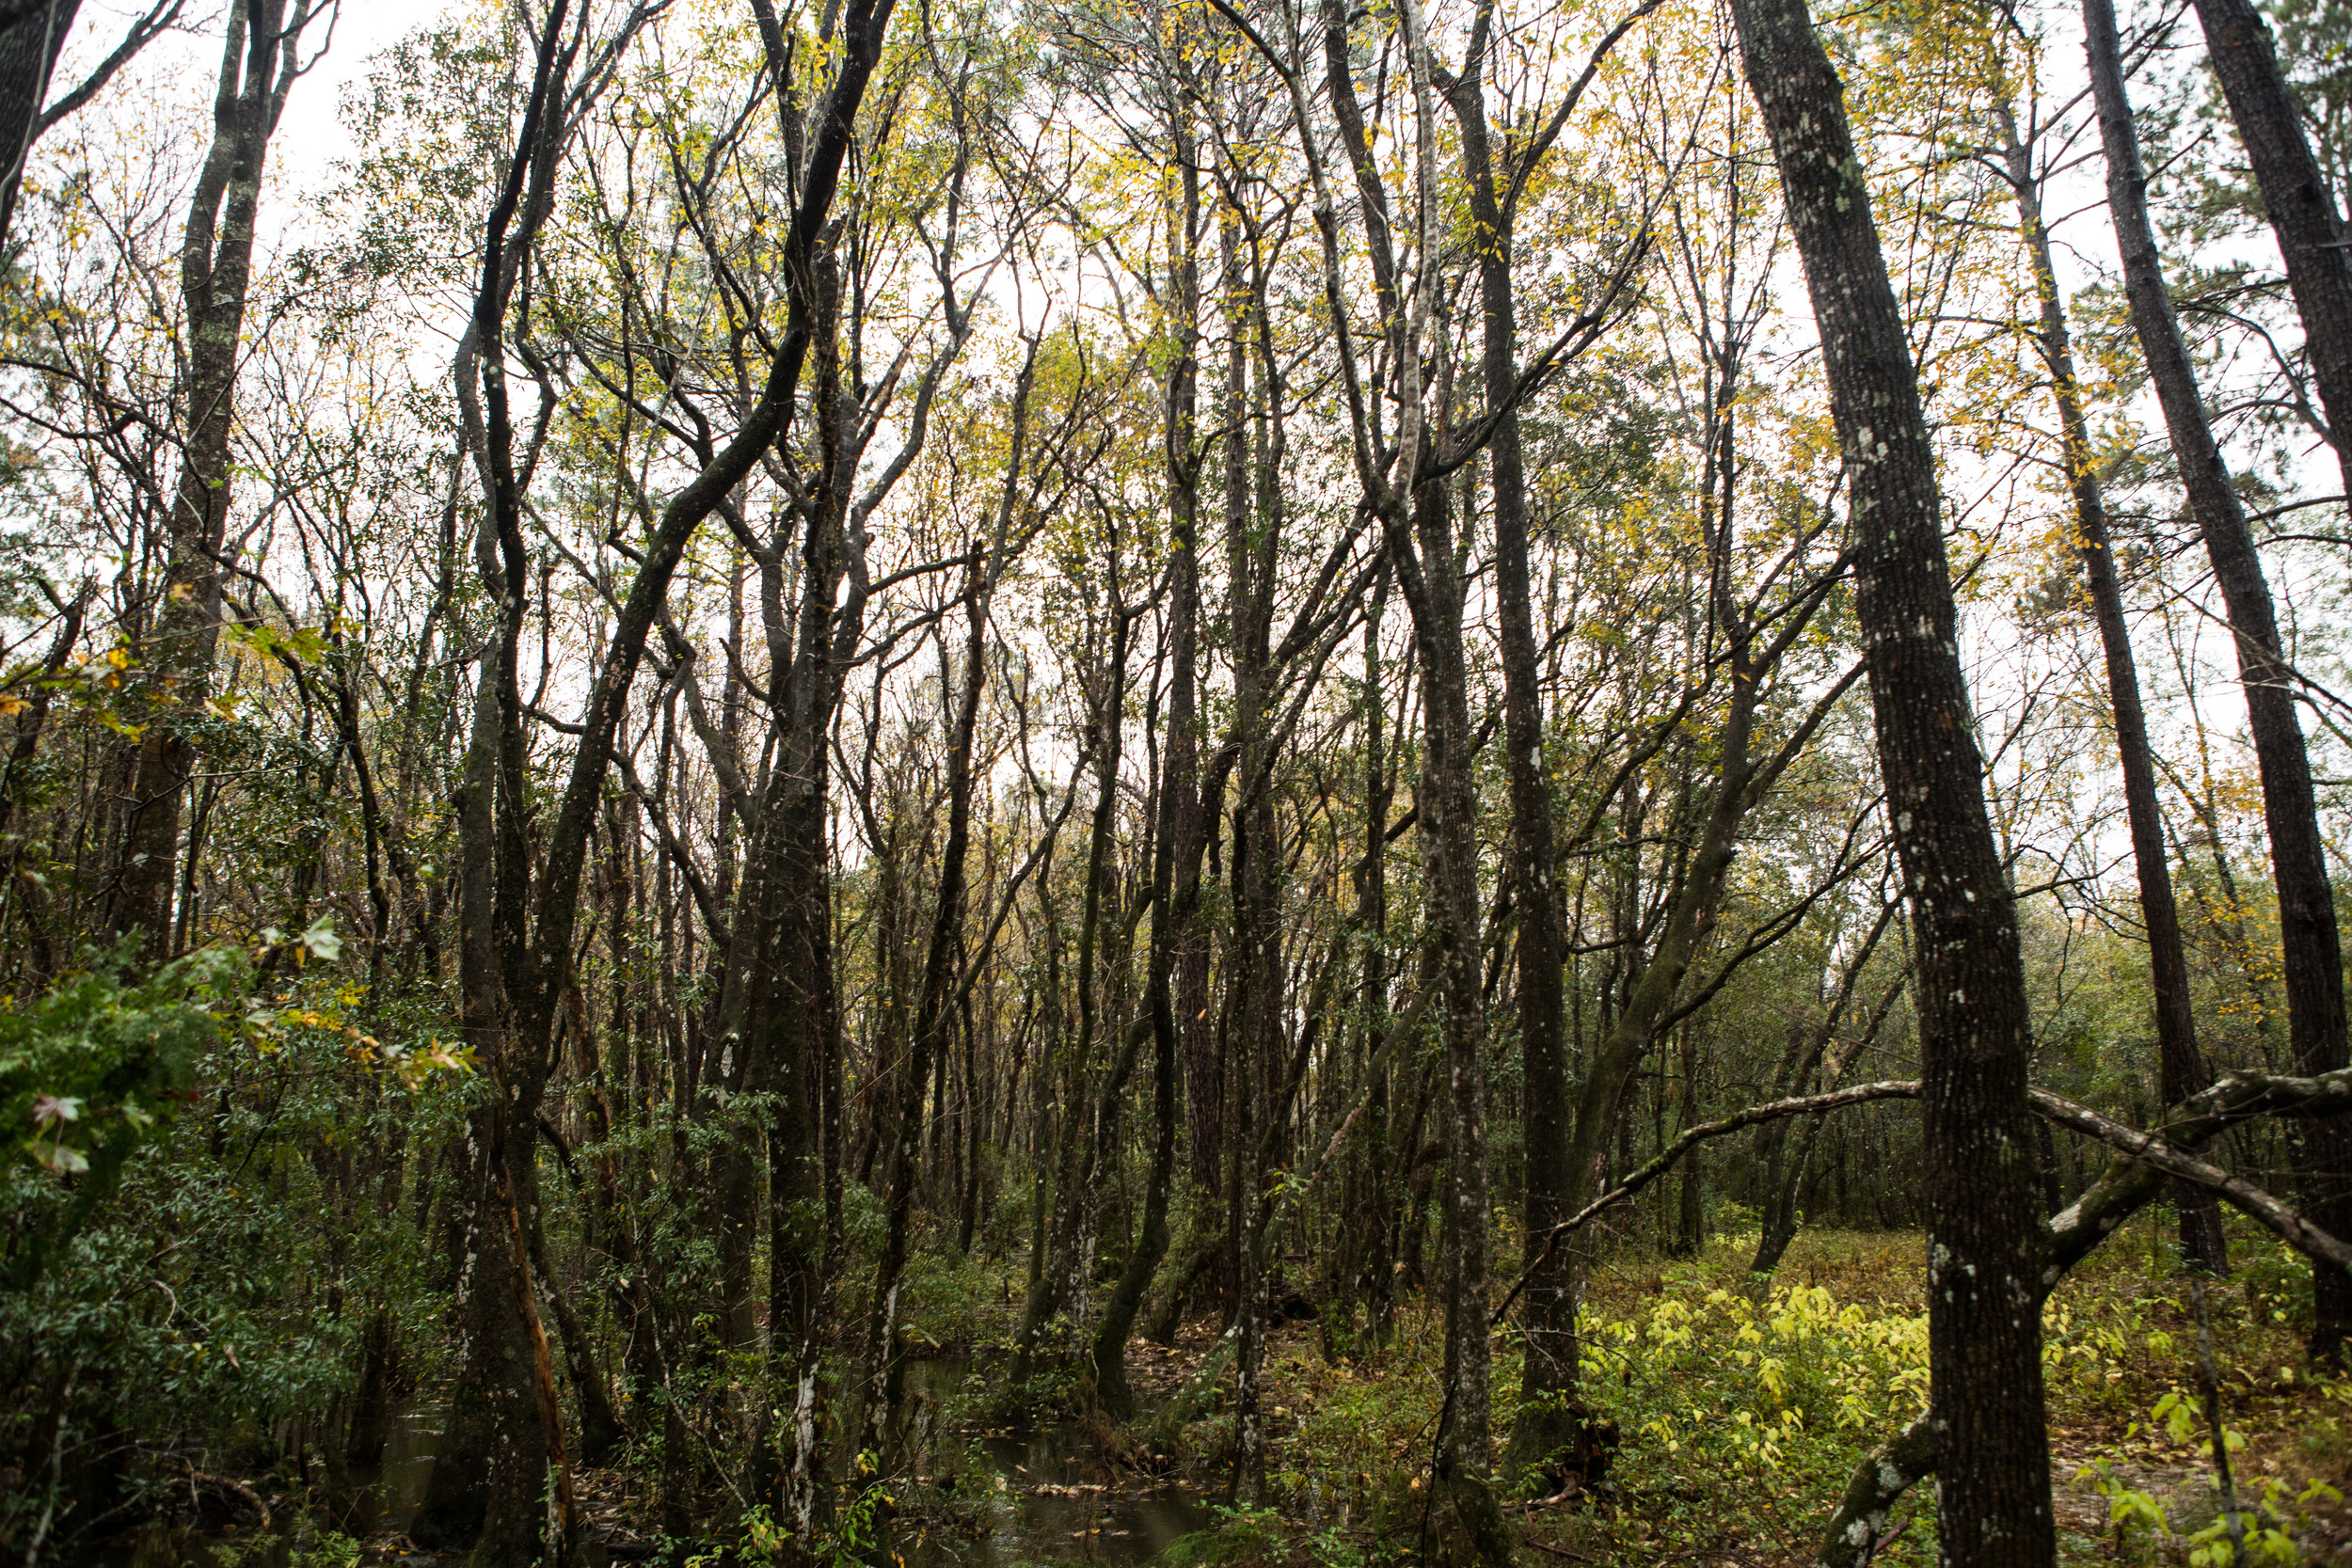 We stayed a night in North Florida with a sweet brother of my mom's. He lives on a few acres in the country, nestles among these pretty spindly trees.